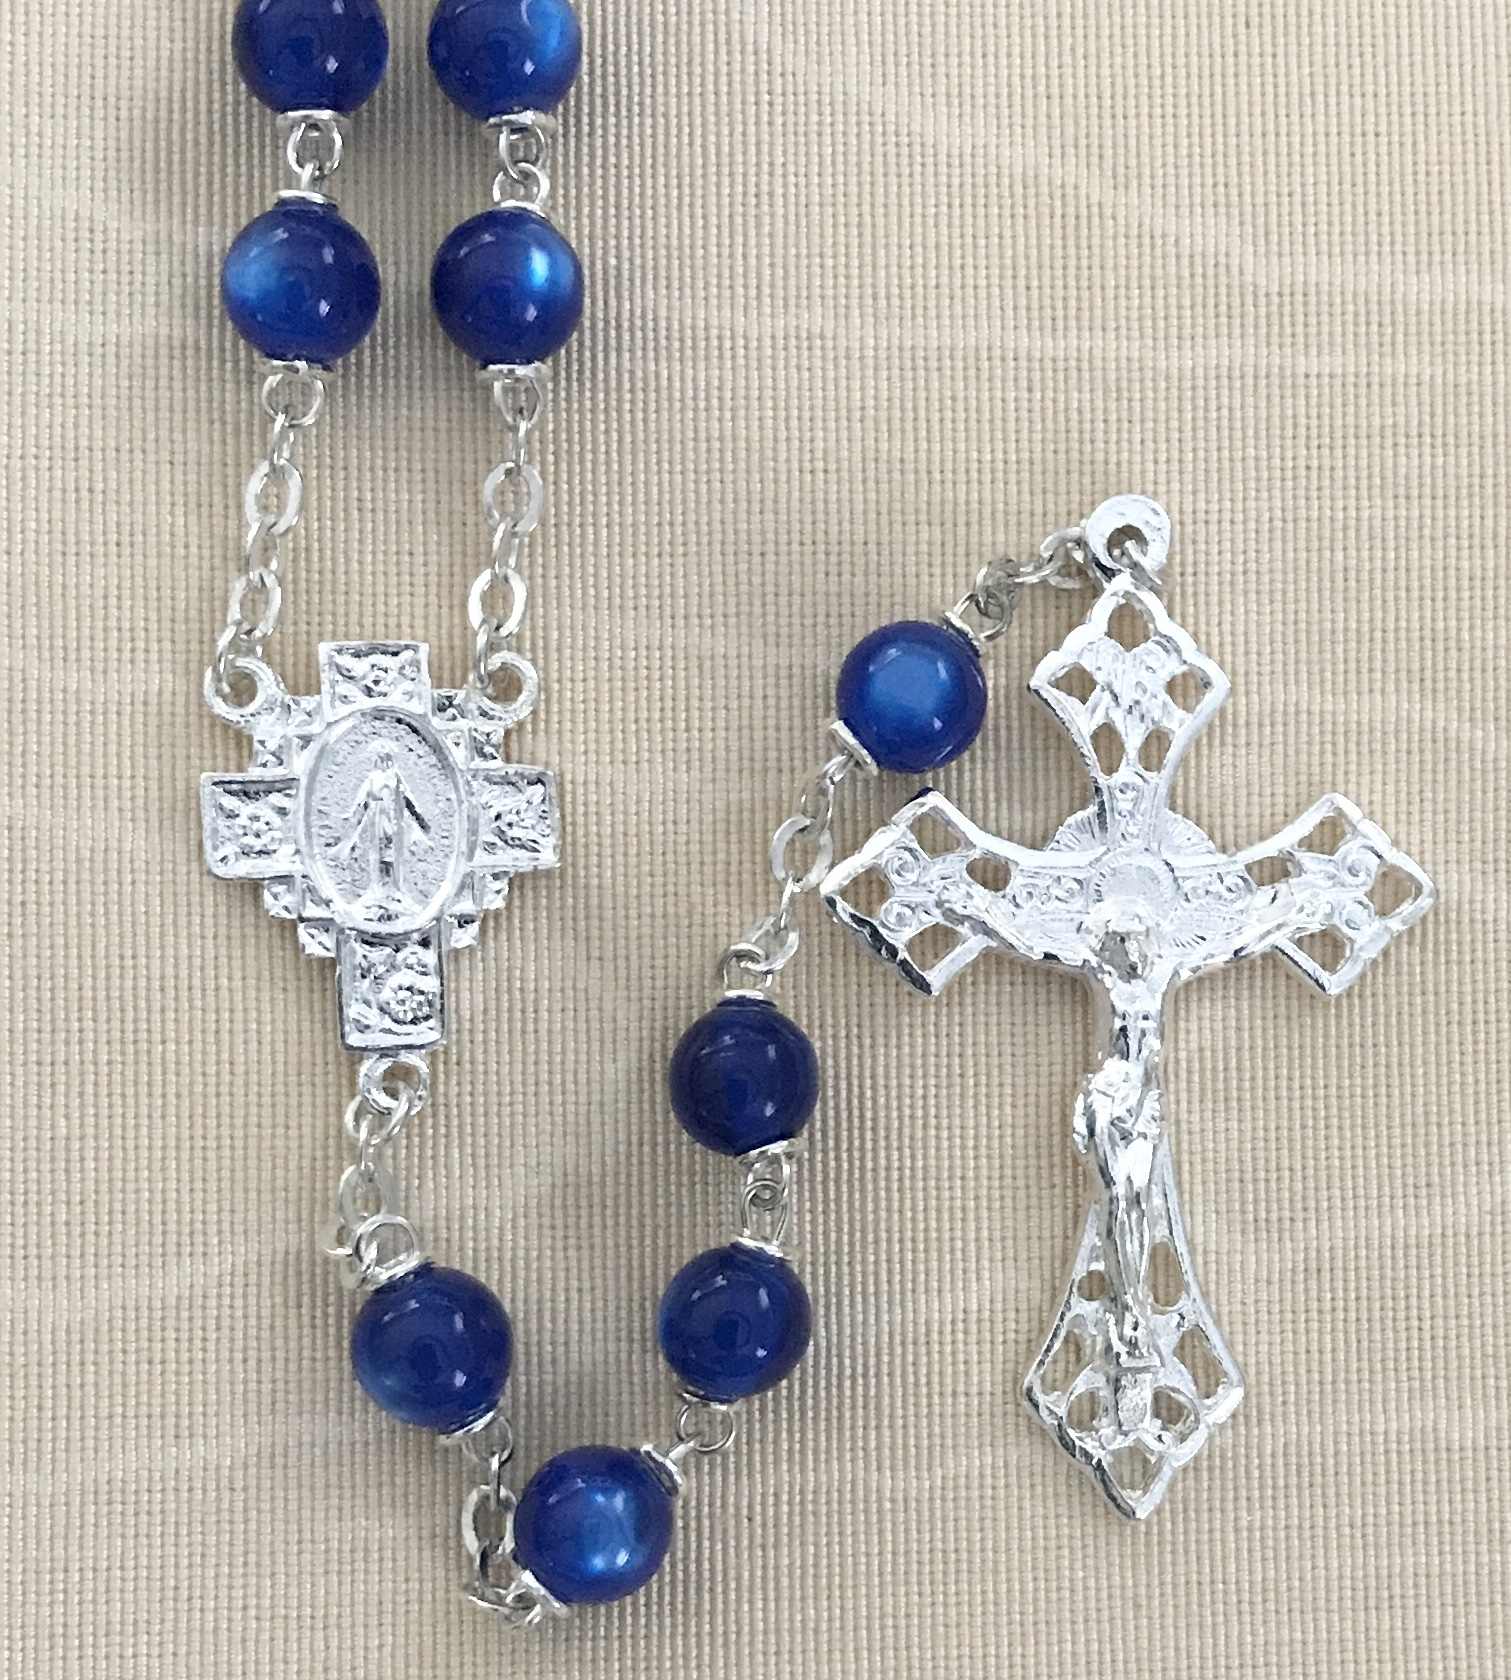 7mm BLUE PEARL LOC-LINK ROSARY WITH STERLING SILVER PLATED CRUCIFIX AND CENTER GIFT BOXED